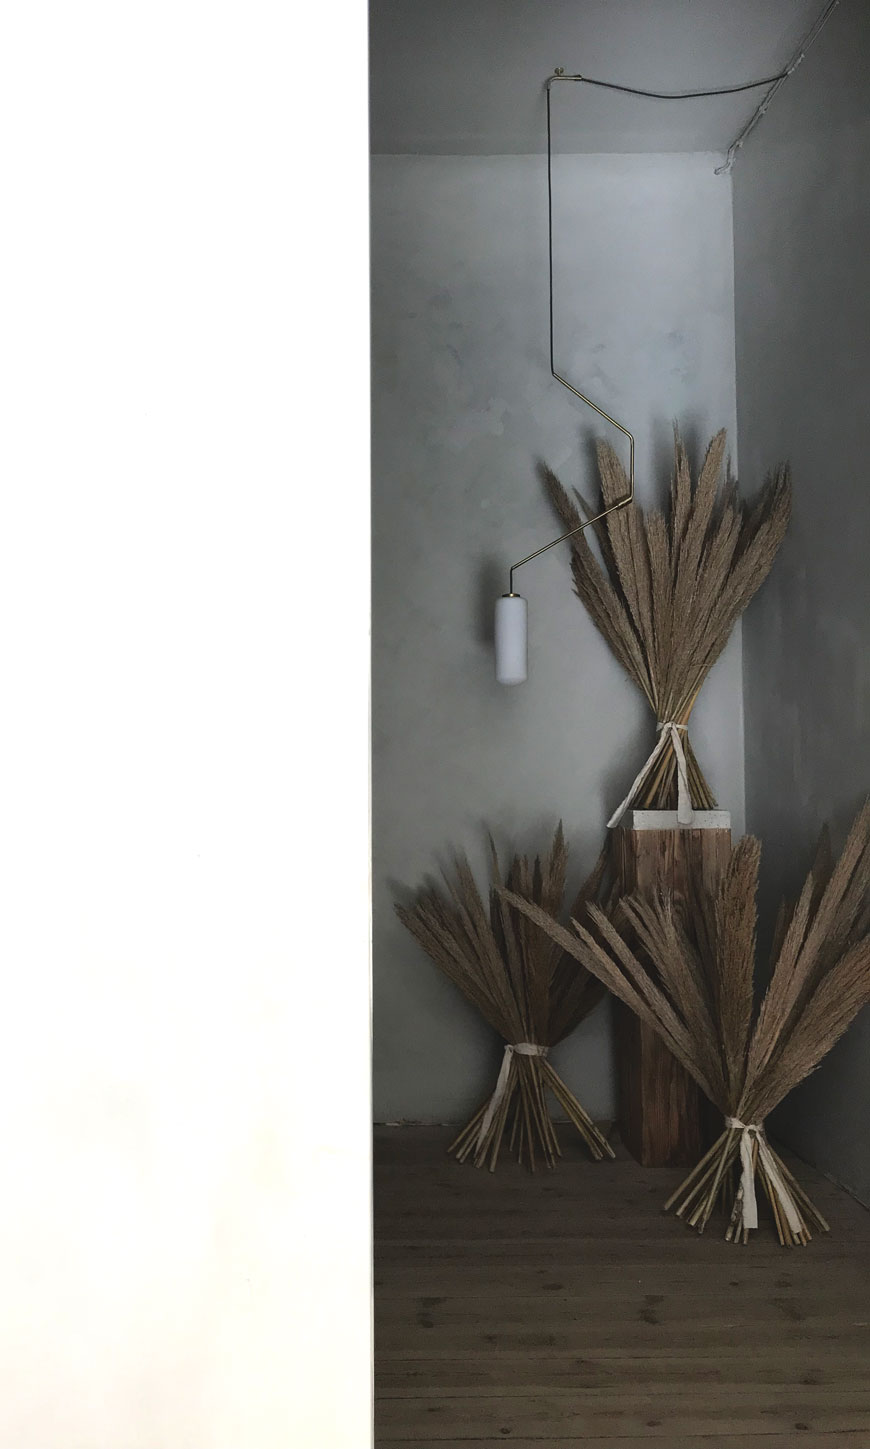 A stack of grasses styled against grey lime washed walls at 3daysofdesign